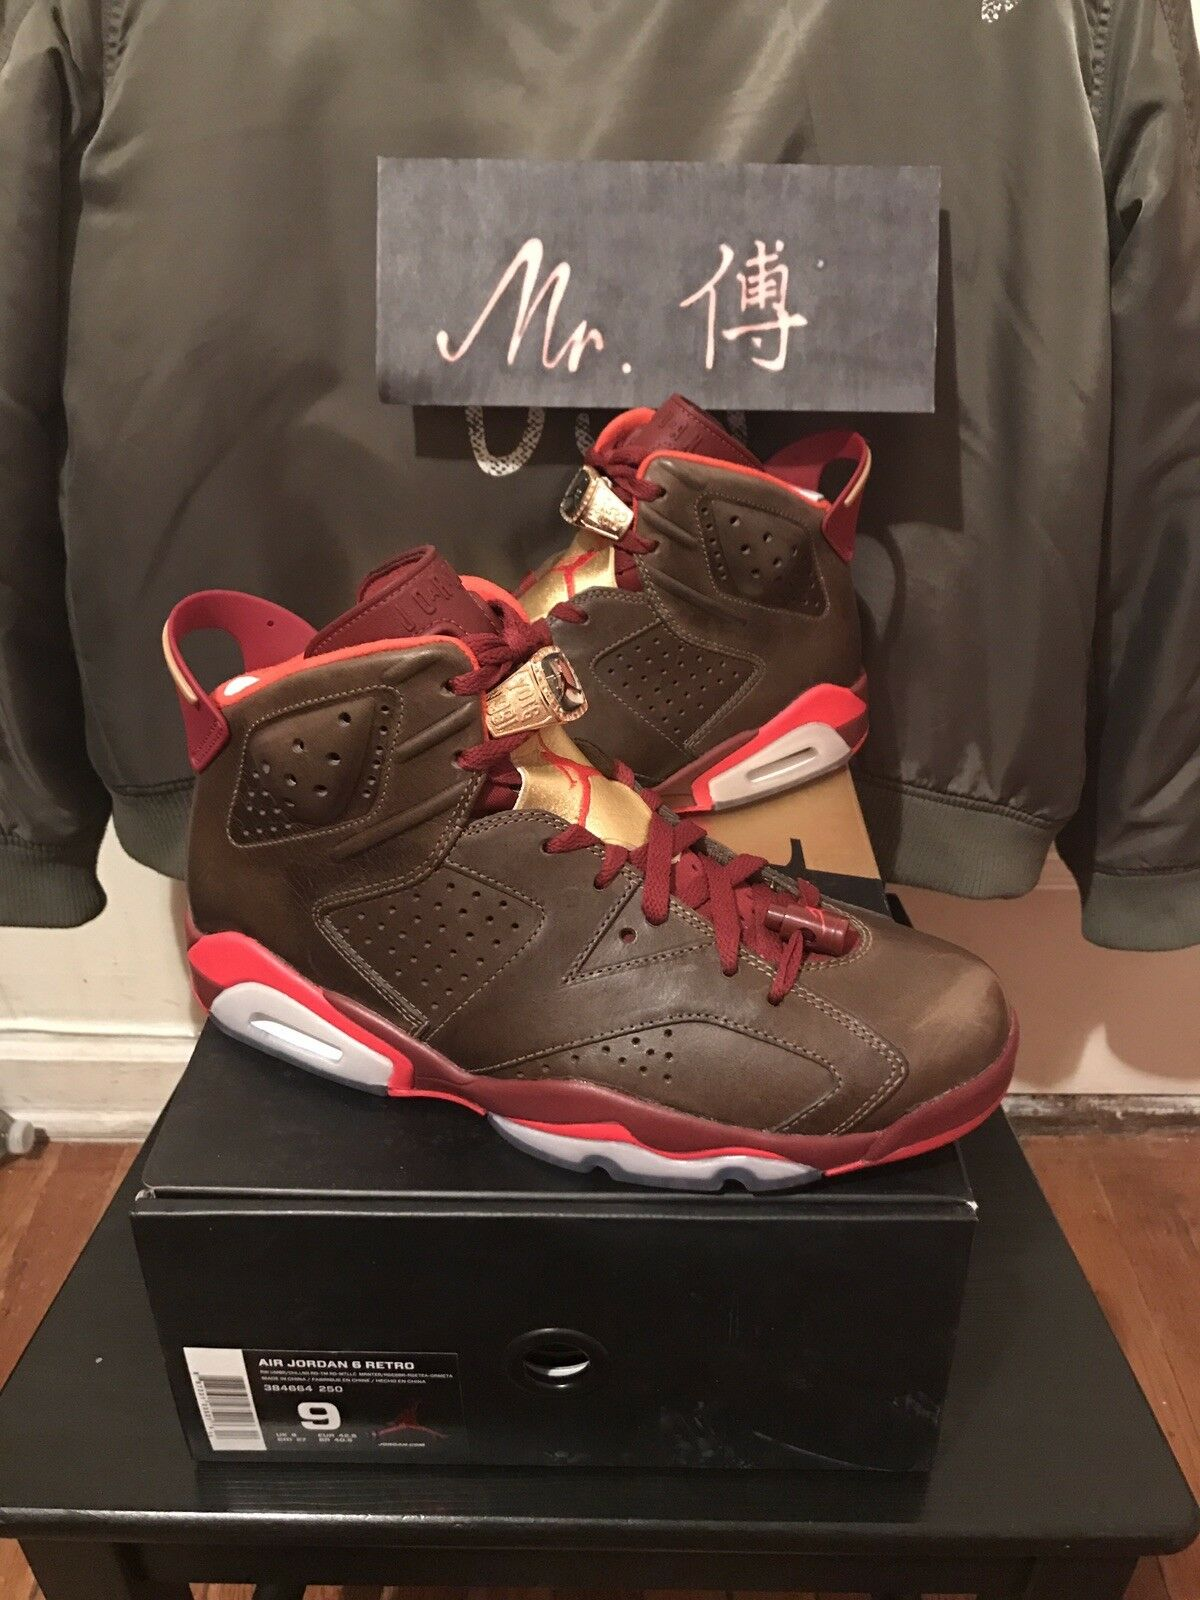 Nike Air Jordan 6 retro VI cigar championship shoes men's size 9